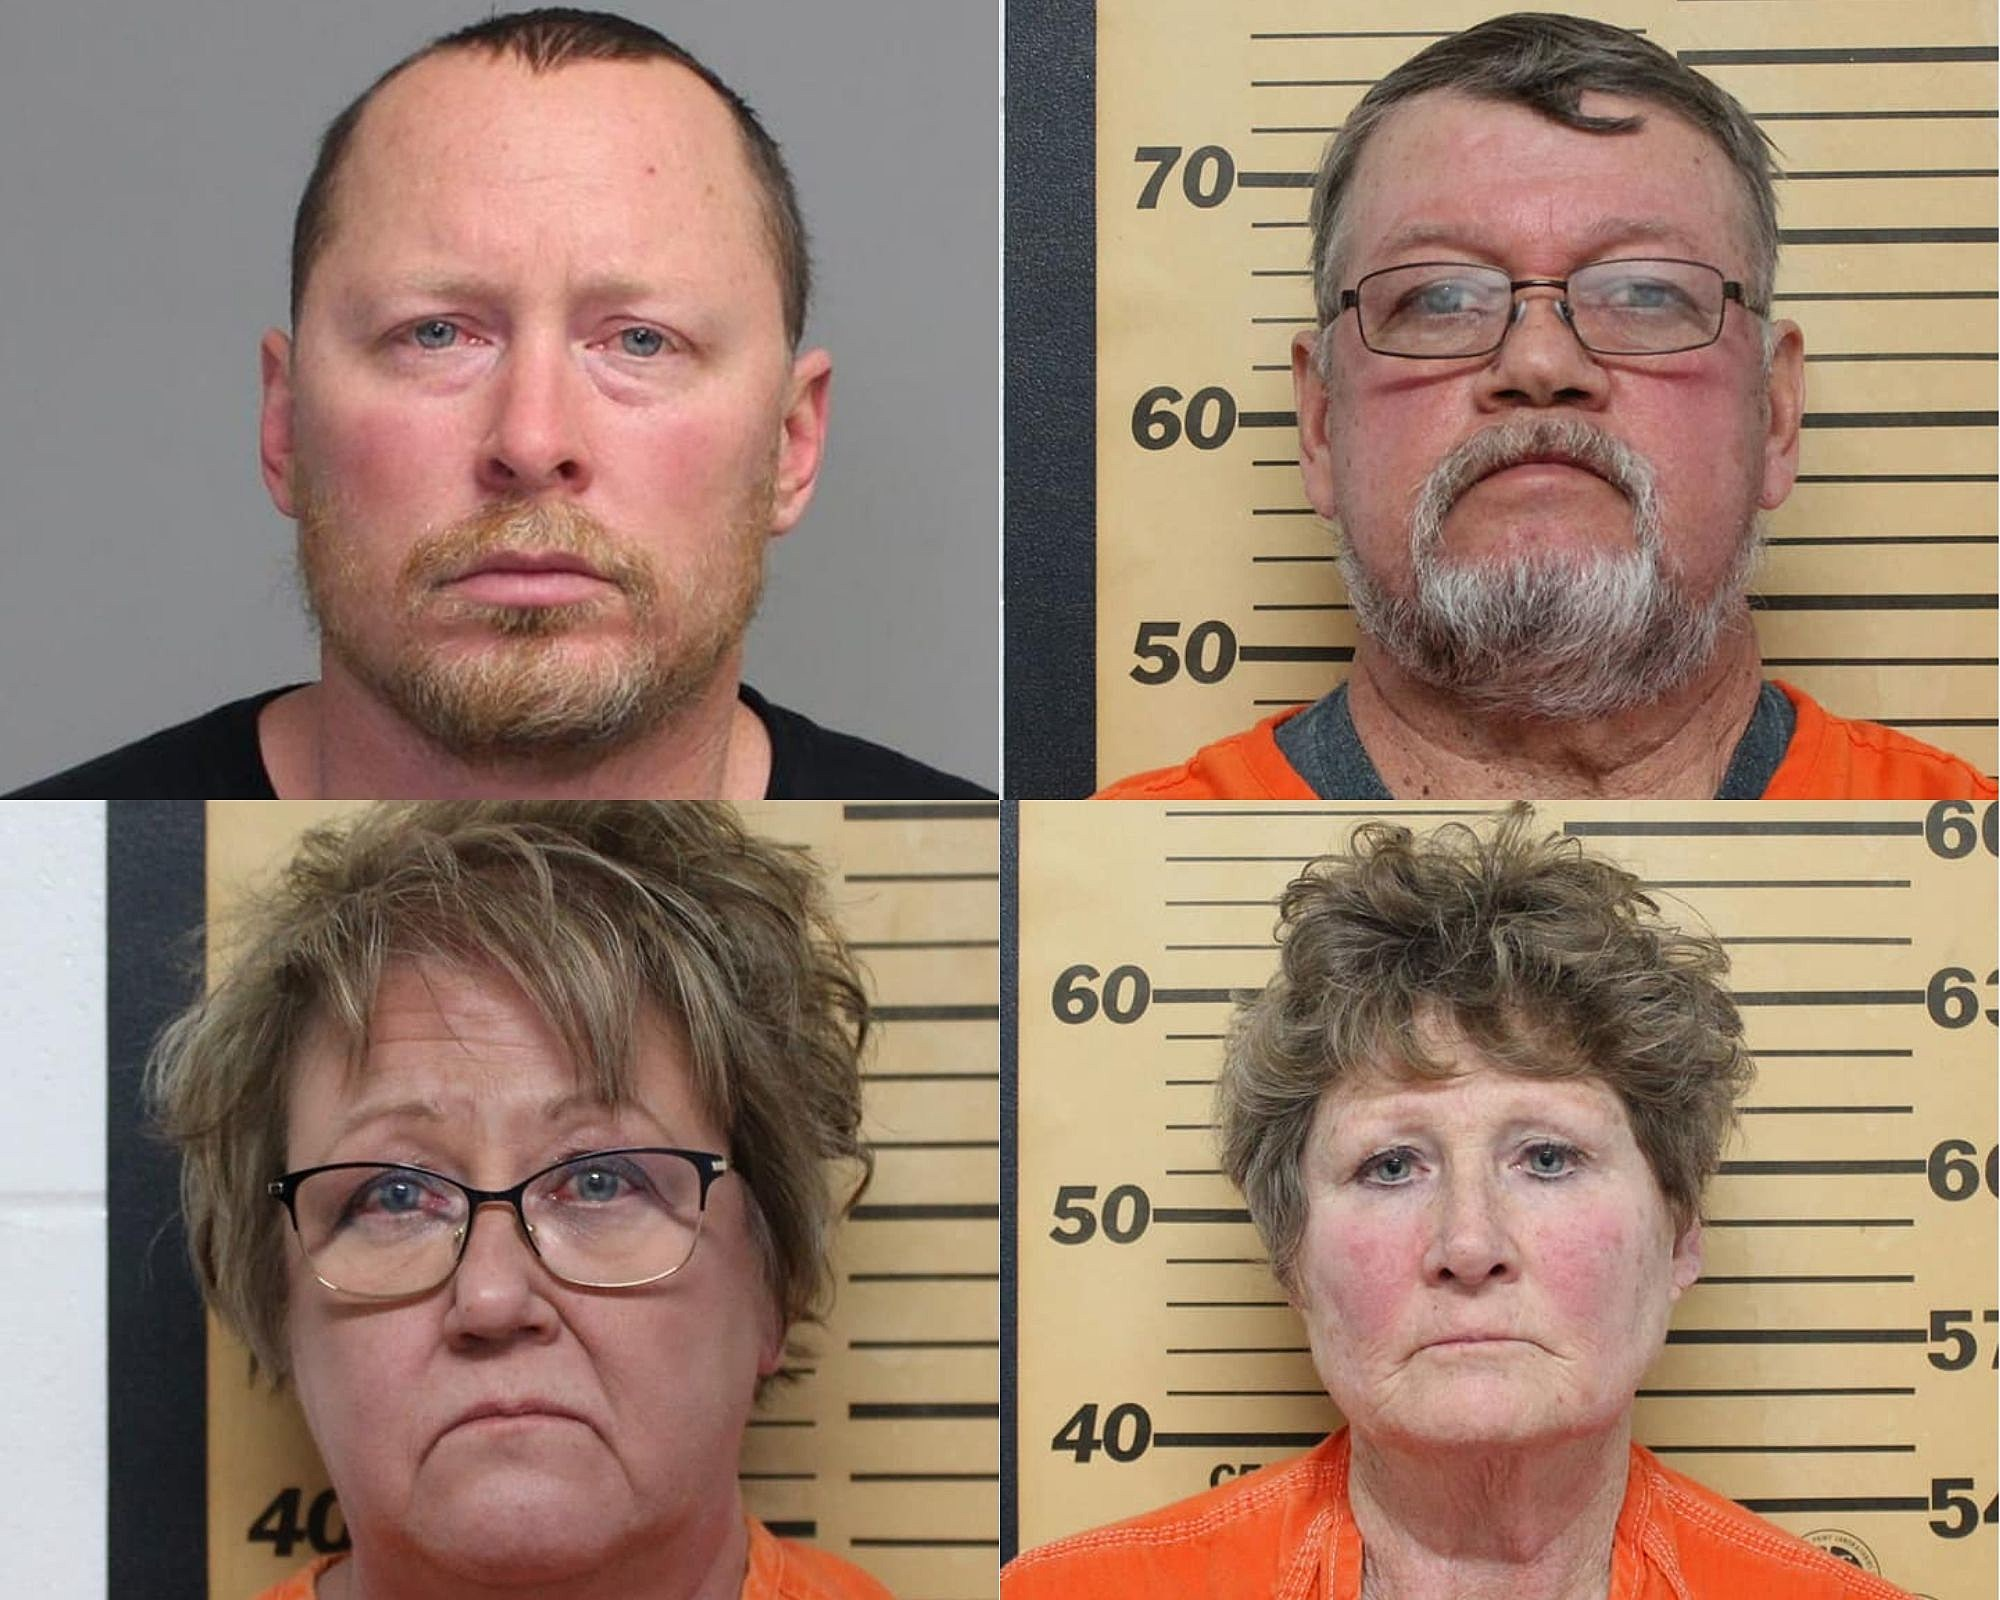 Mayor, Police Chief, and Two Clerks of Iowa Town Arrested for Embezzlement and Fraud Schemes